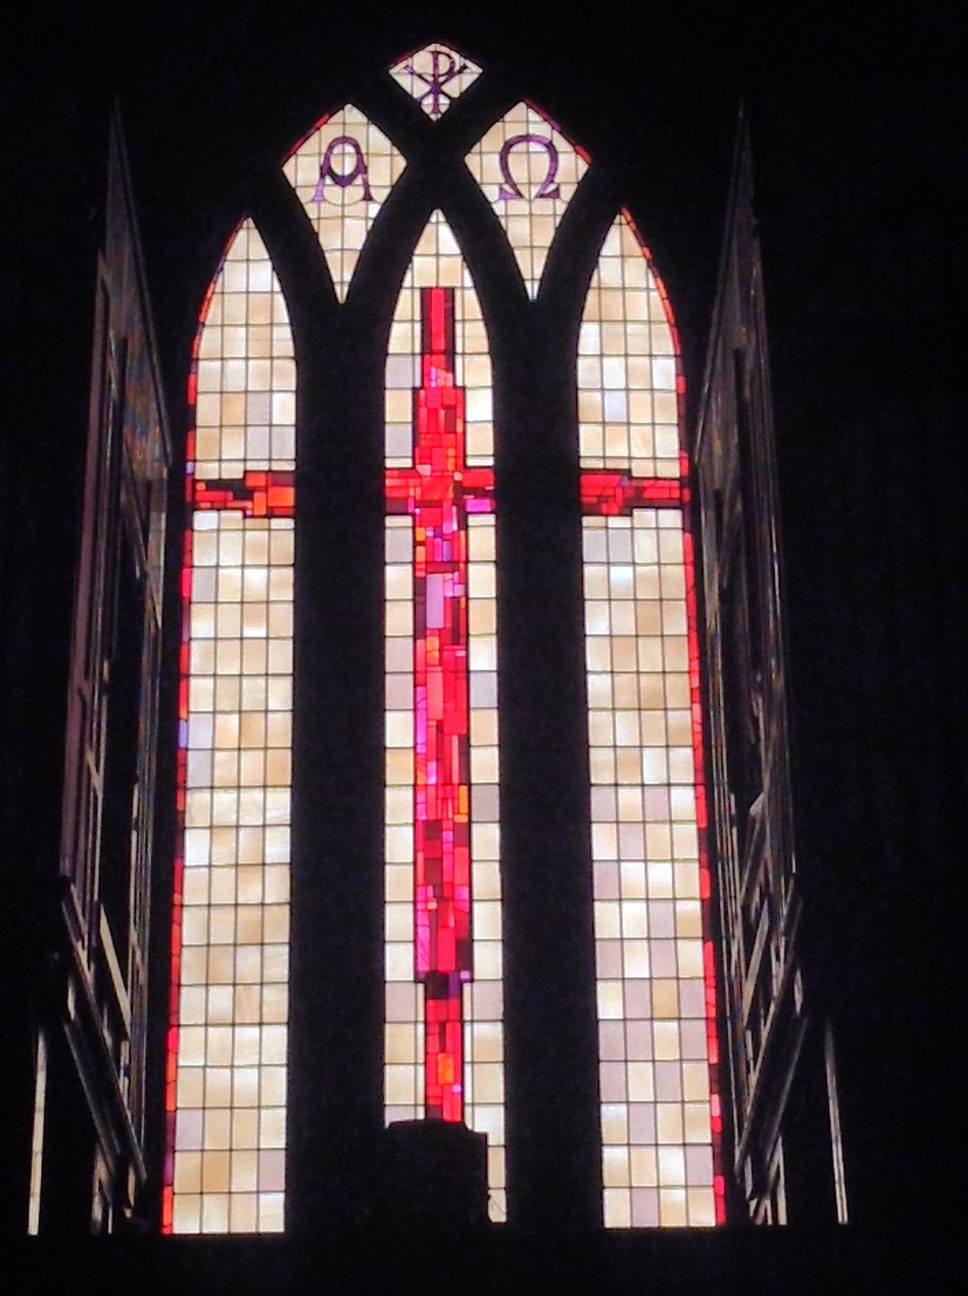 restored stained glass windows